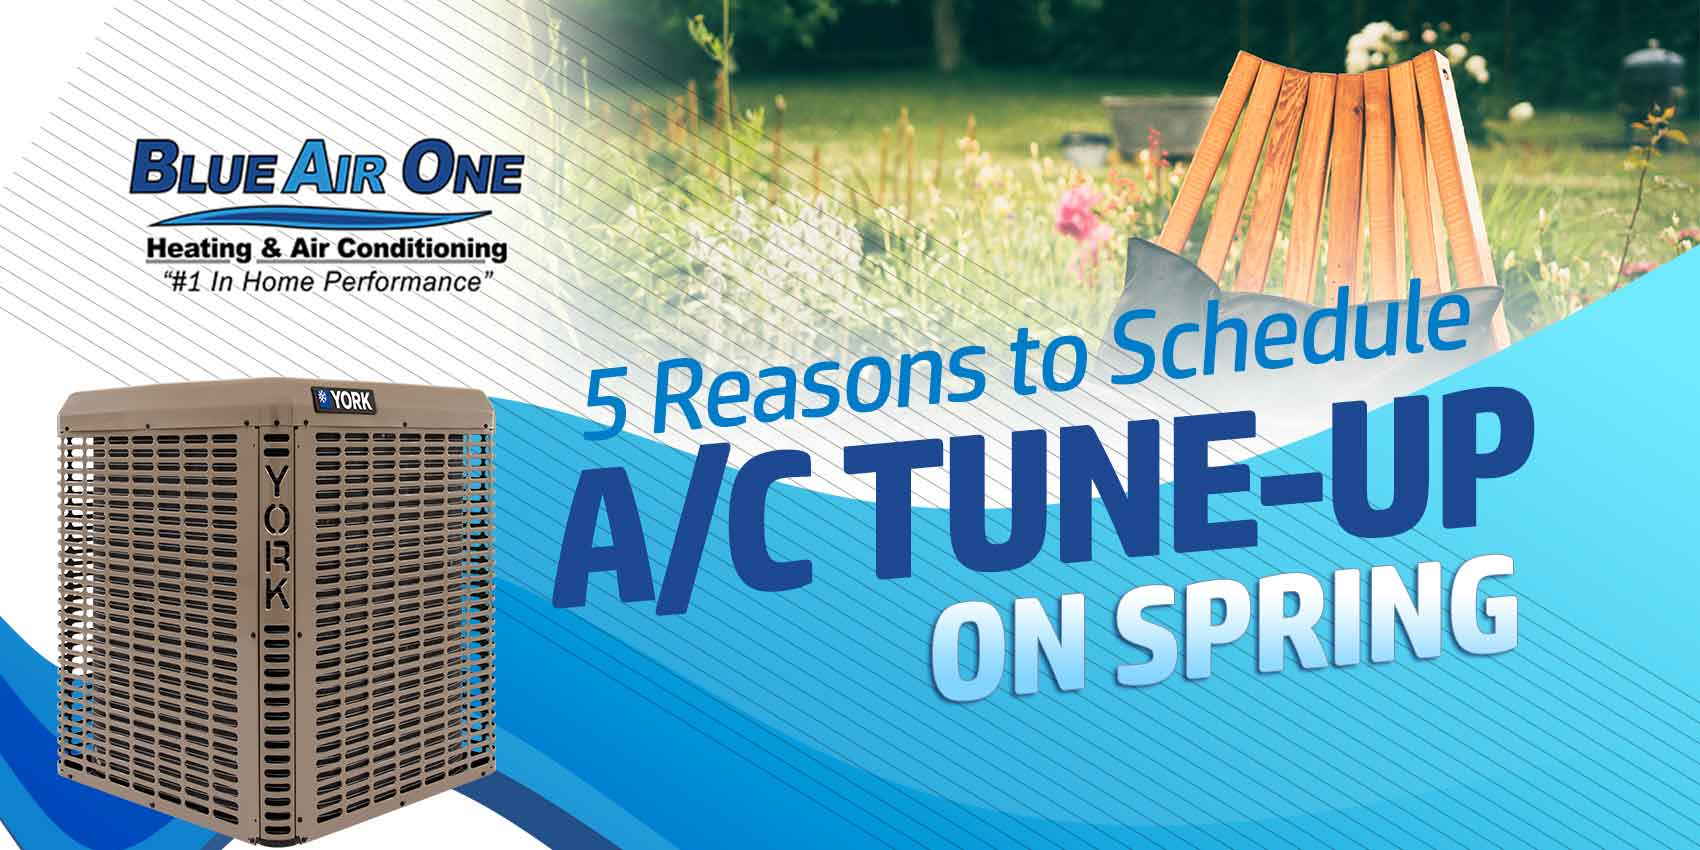 5 Reasons to Schedule AC Maintenance on Spring